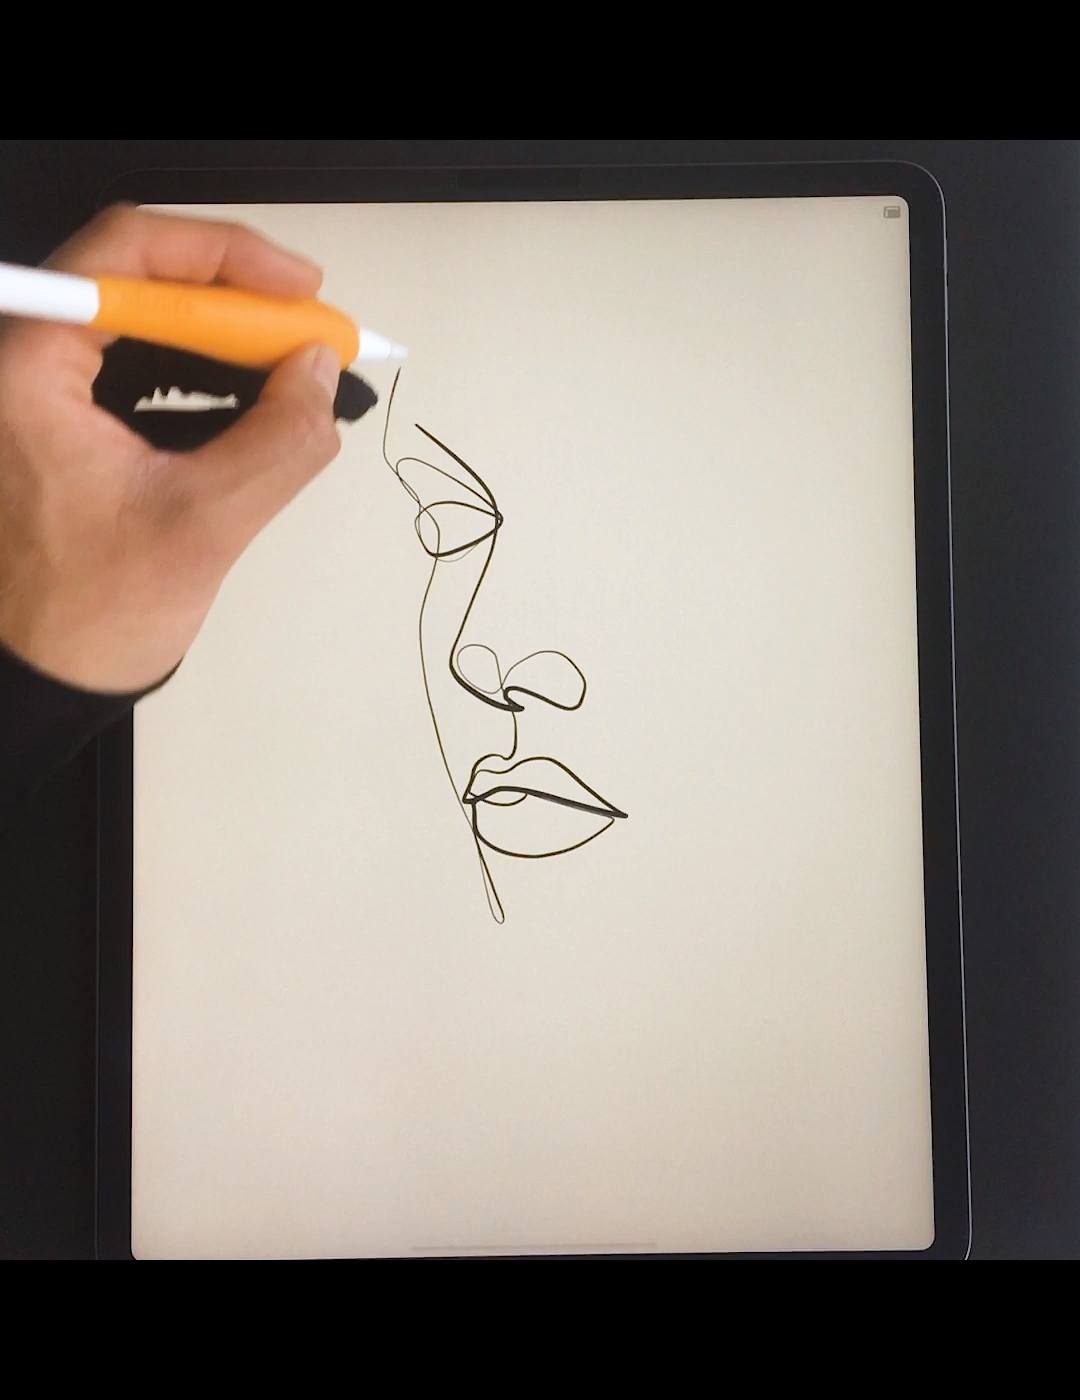 Using line art technique to draw portraits and faces in a single line.